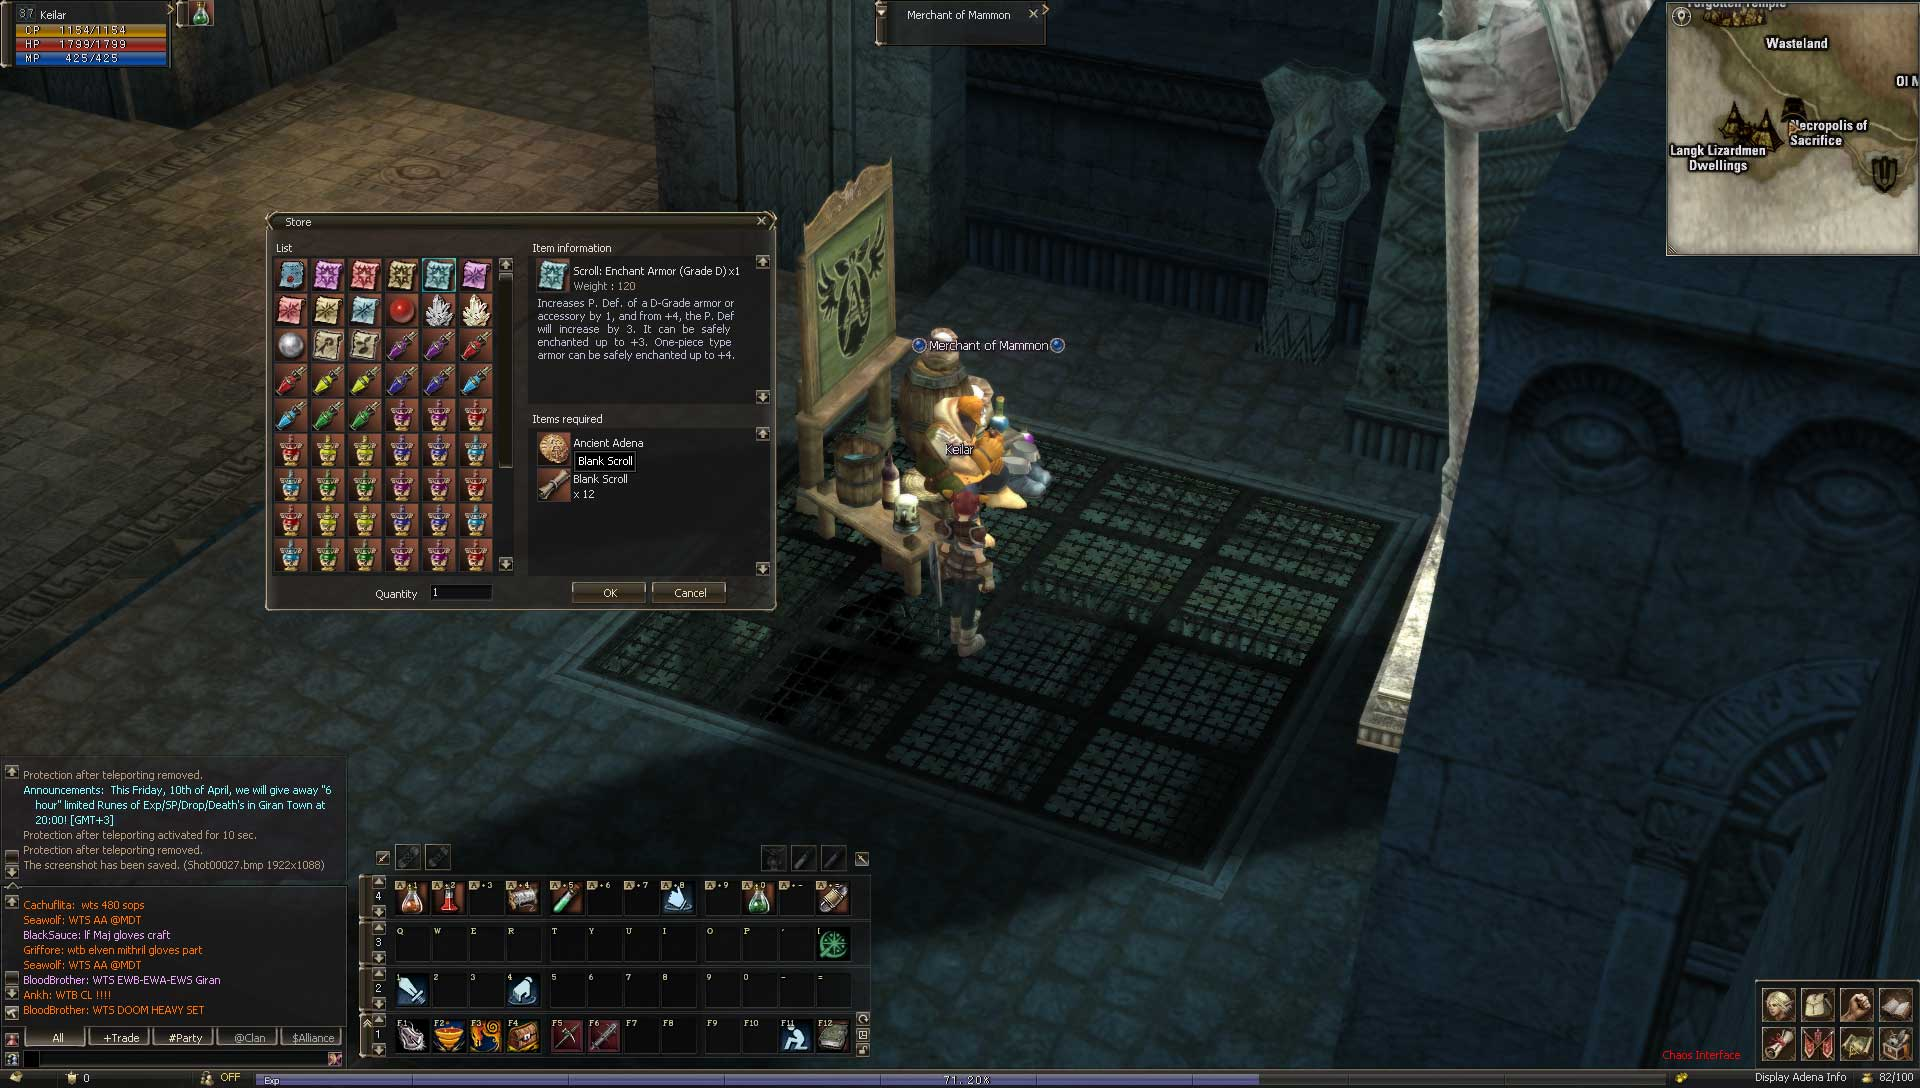 Merchant of Mammon Lineage 2 Interlude